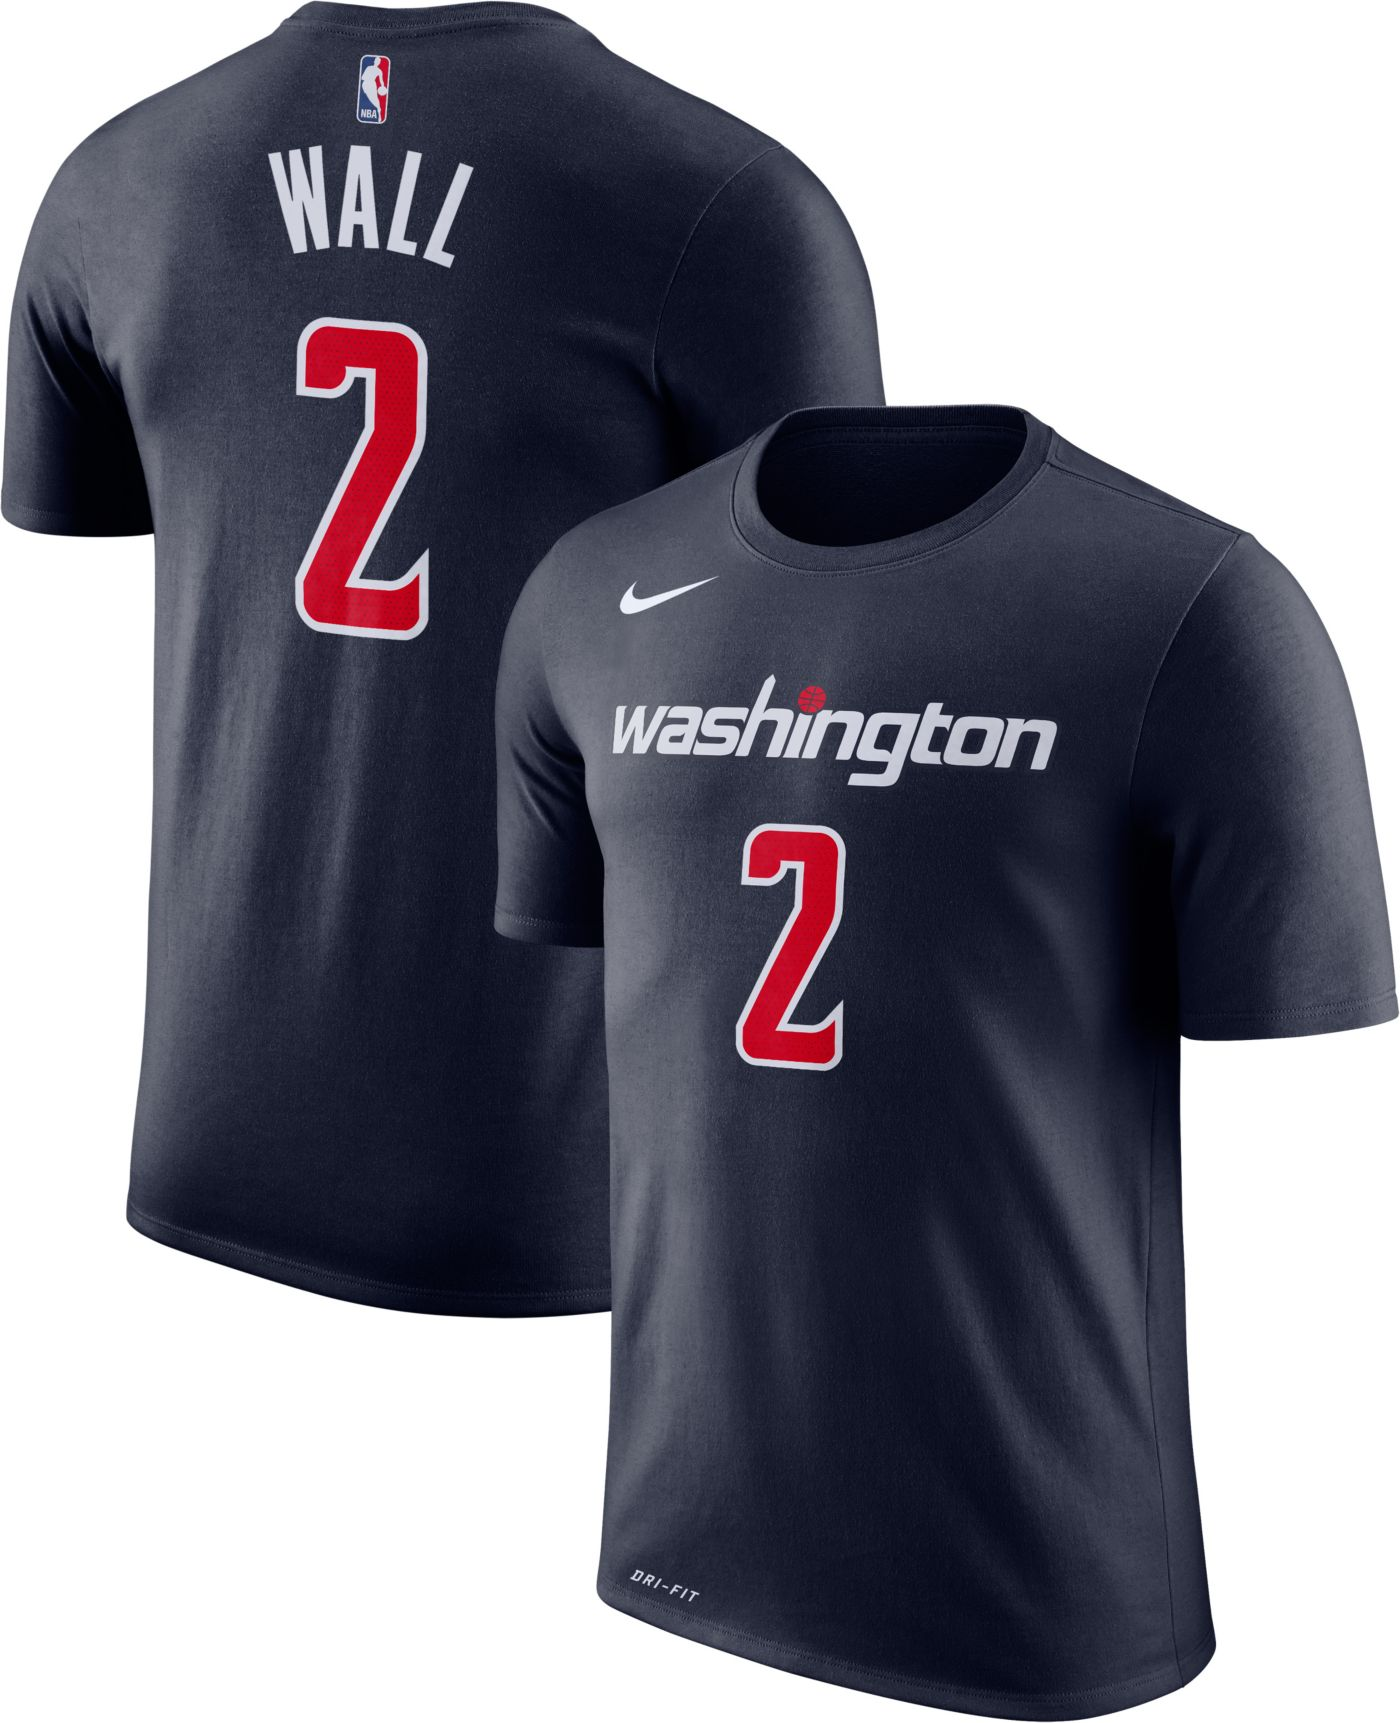 Nike Men's Washington Wizards John Wall #2 Dri-FIT Navy T-Shirt